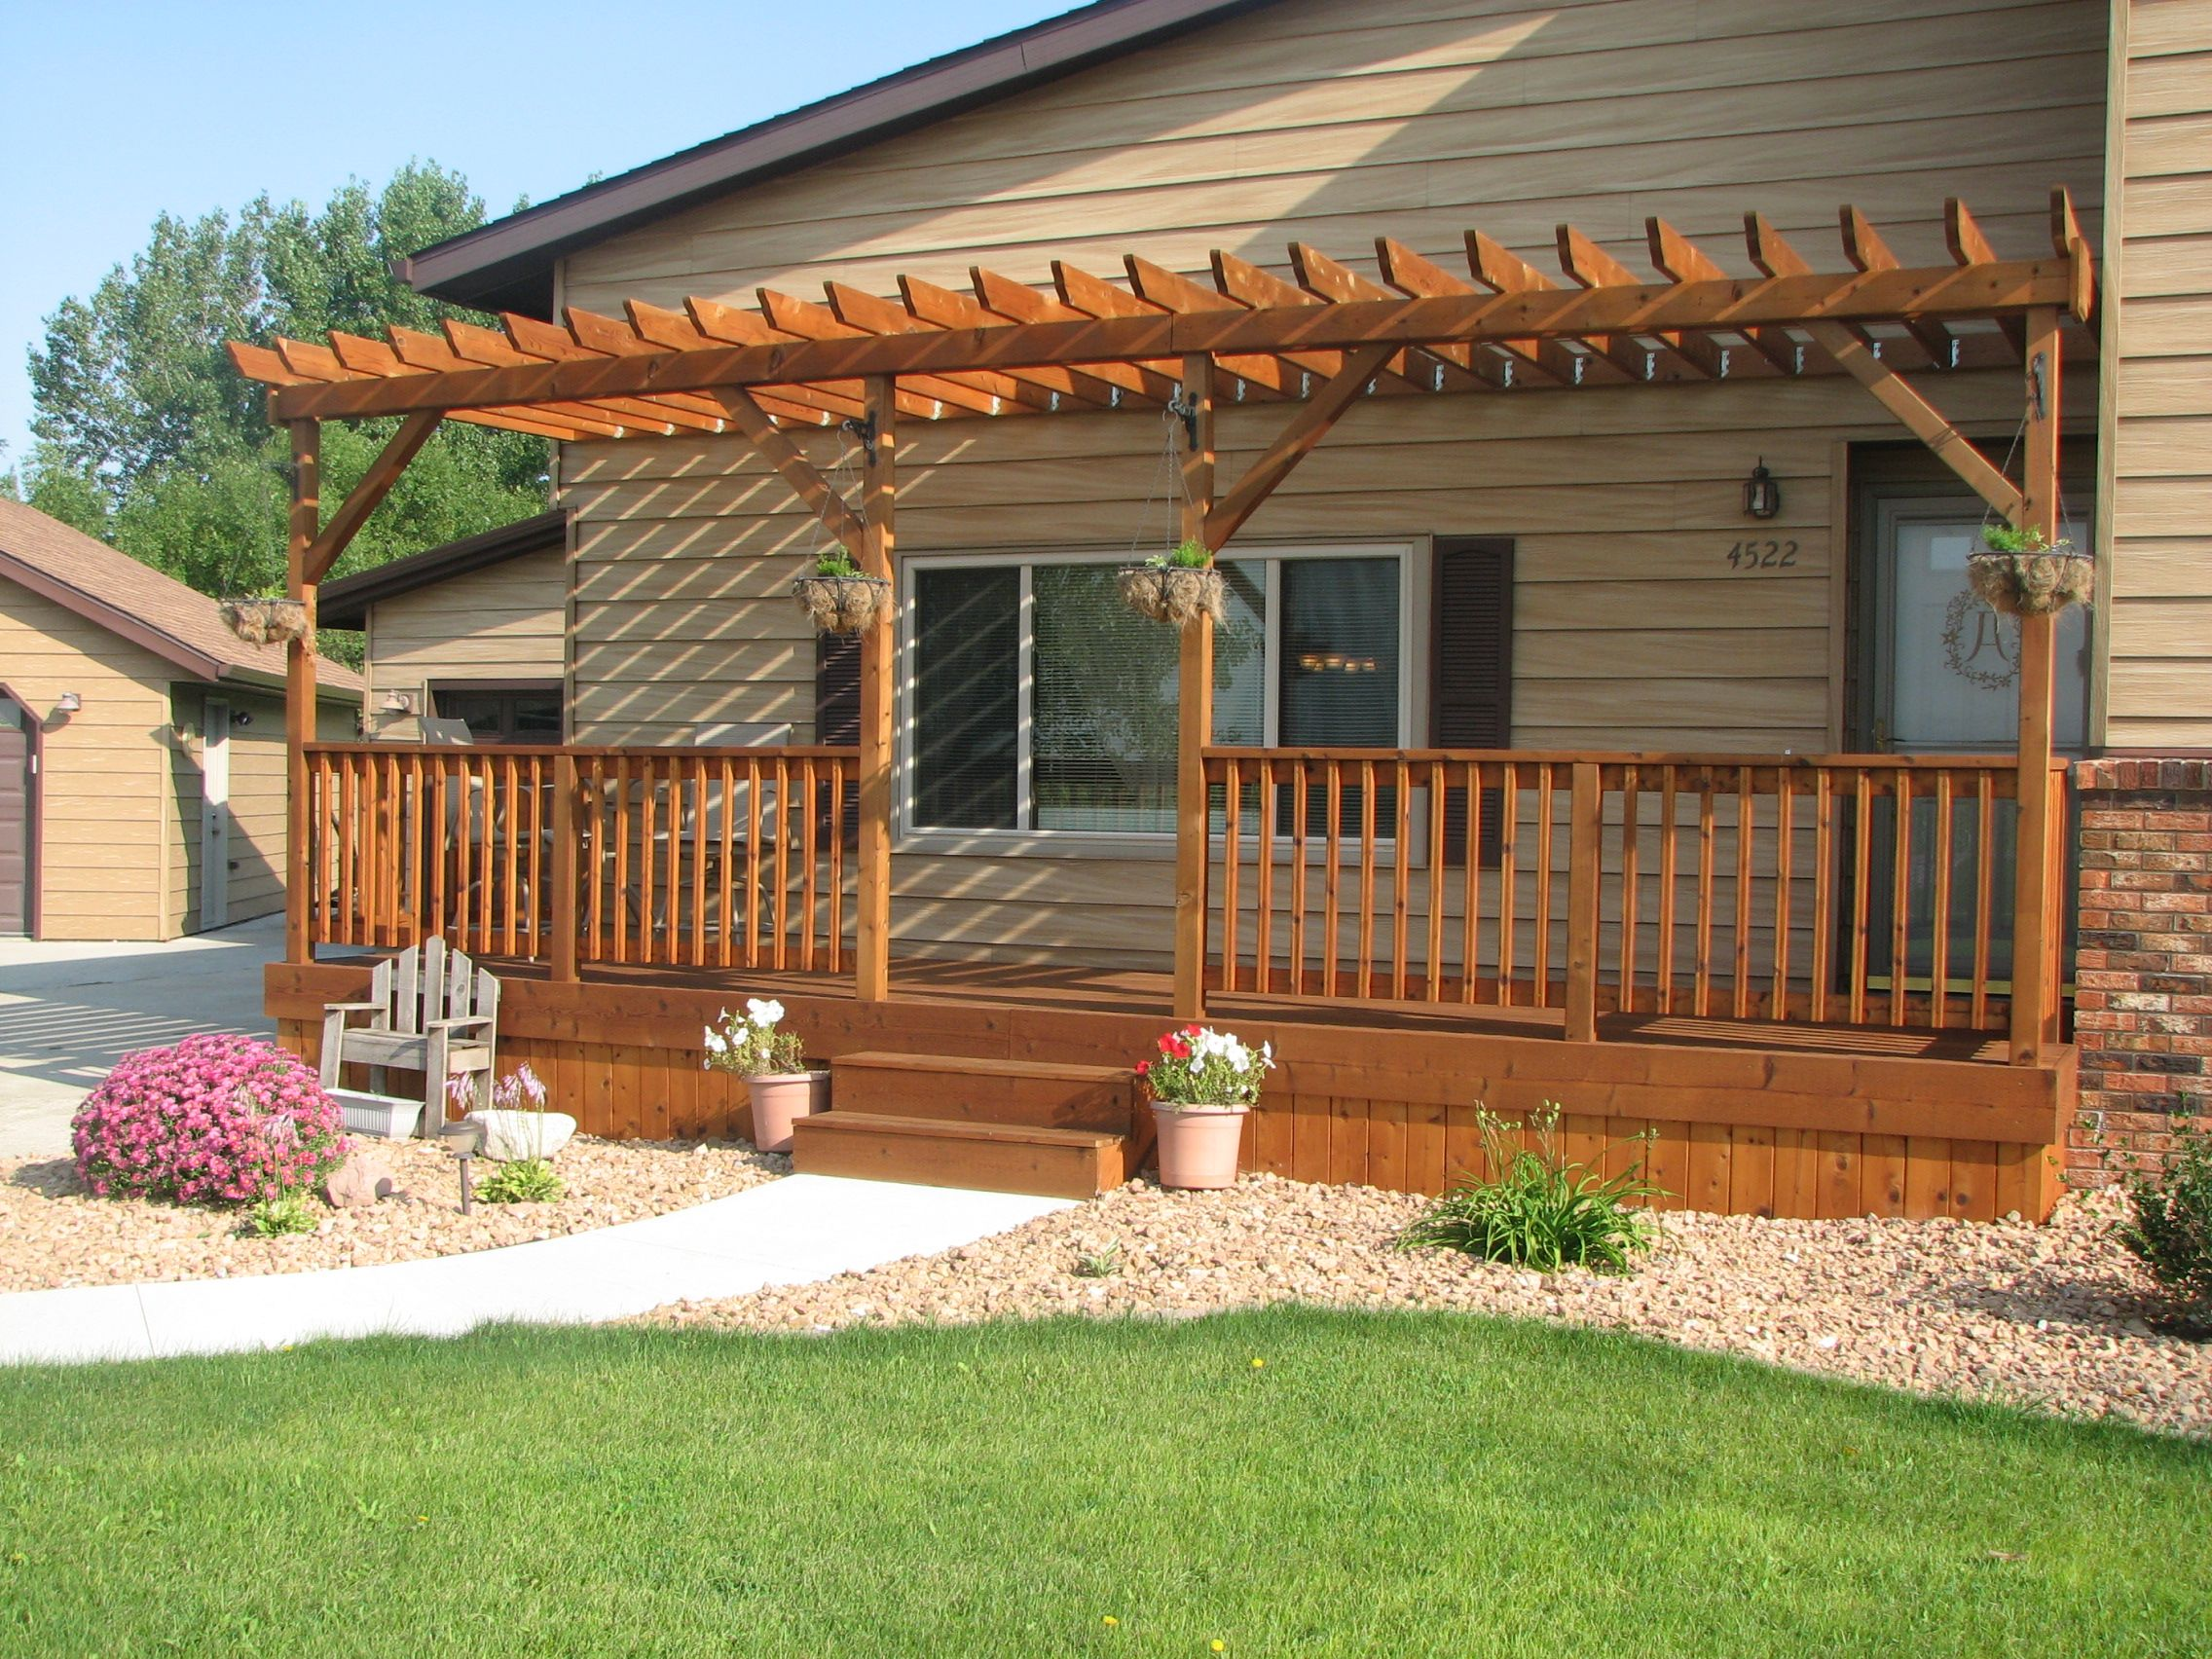 Dreaming is free front porch pergola pergola ideas and for House porch design